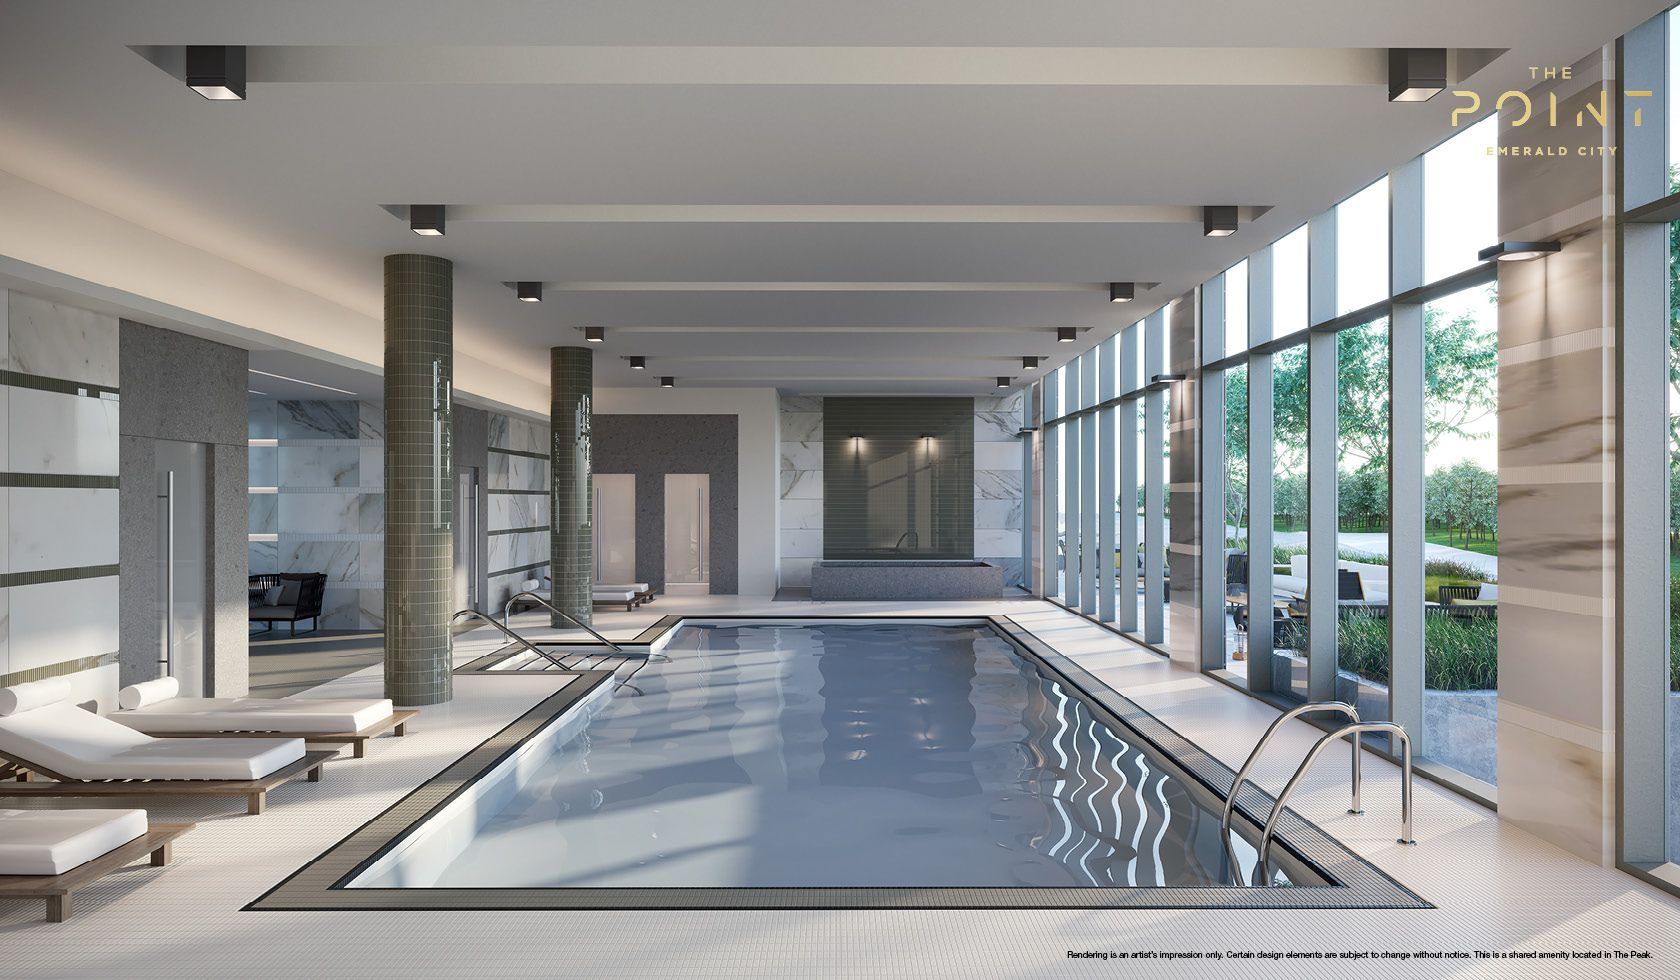 For Sale   Pool houses, Indoor swimming pools, Swimming pools